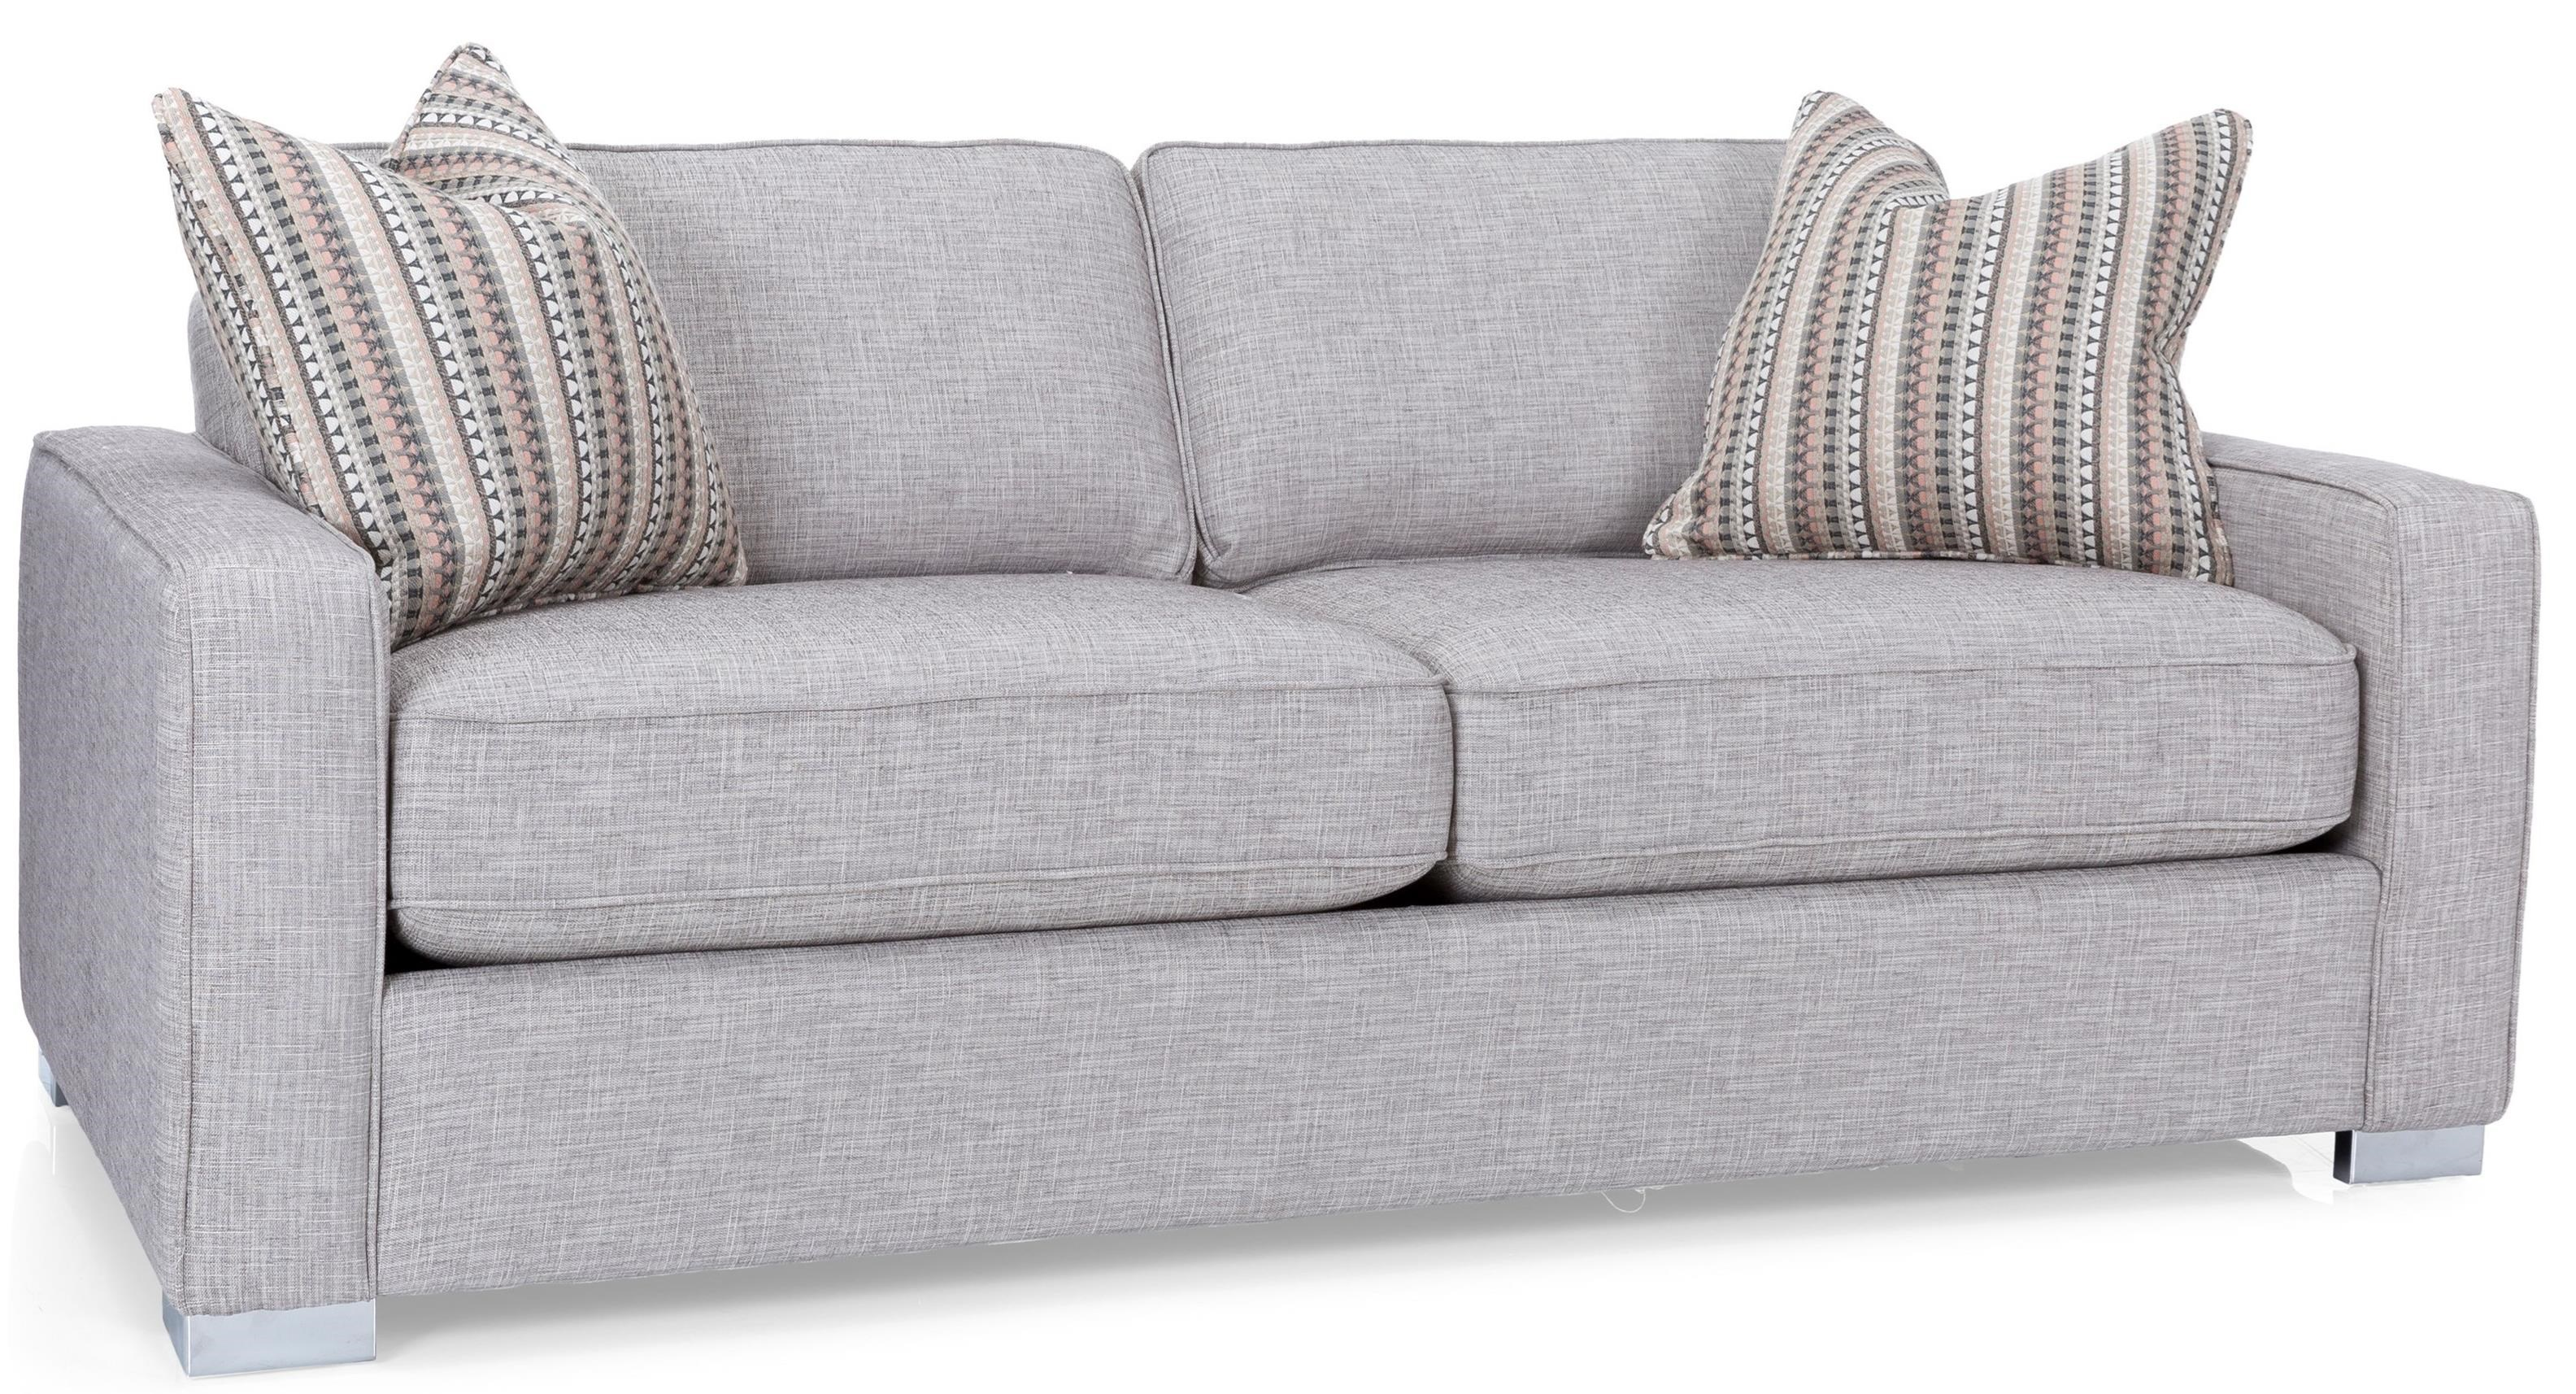 2591 Loveseat by Decor-Rest at Upper Room Home Furnishings